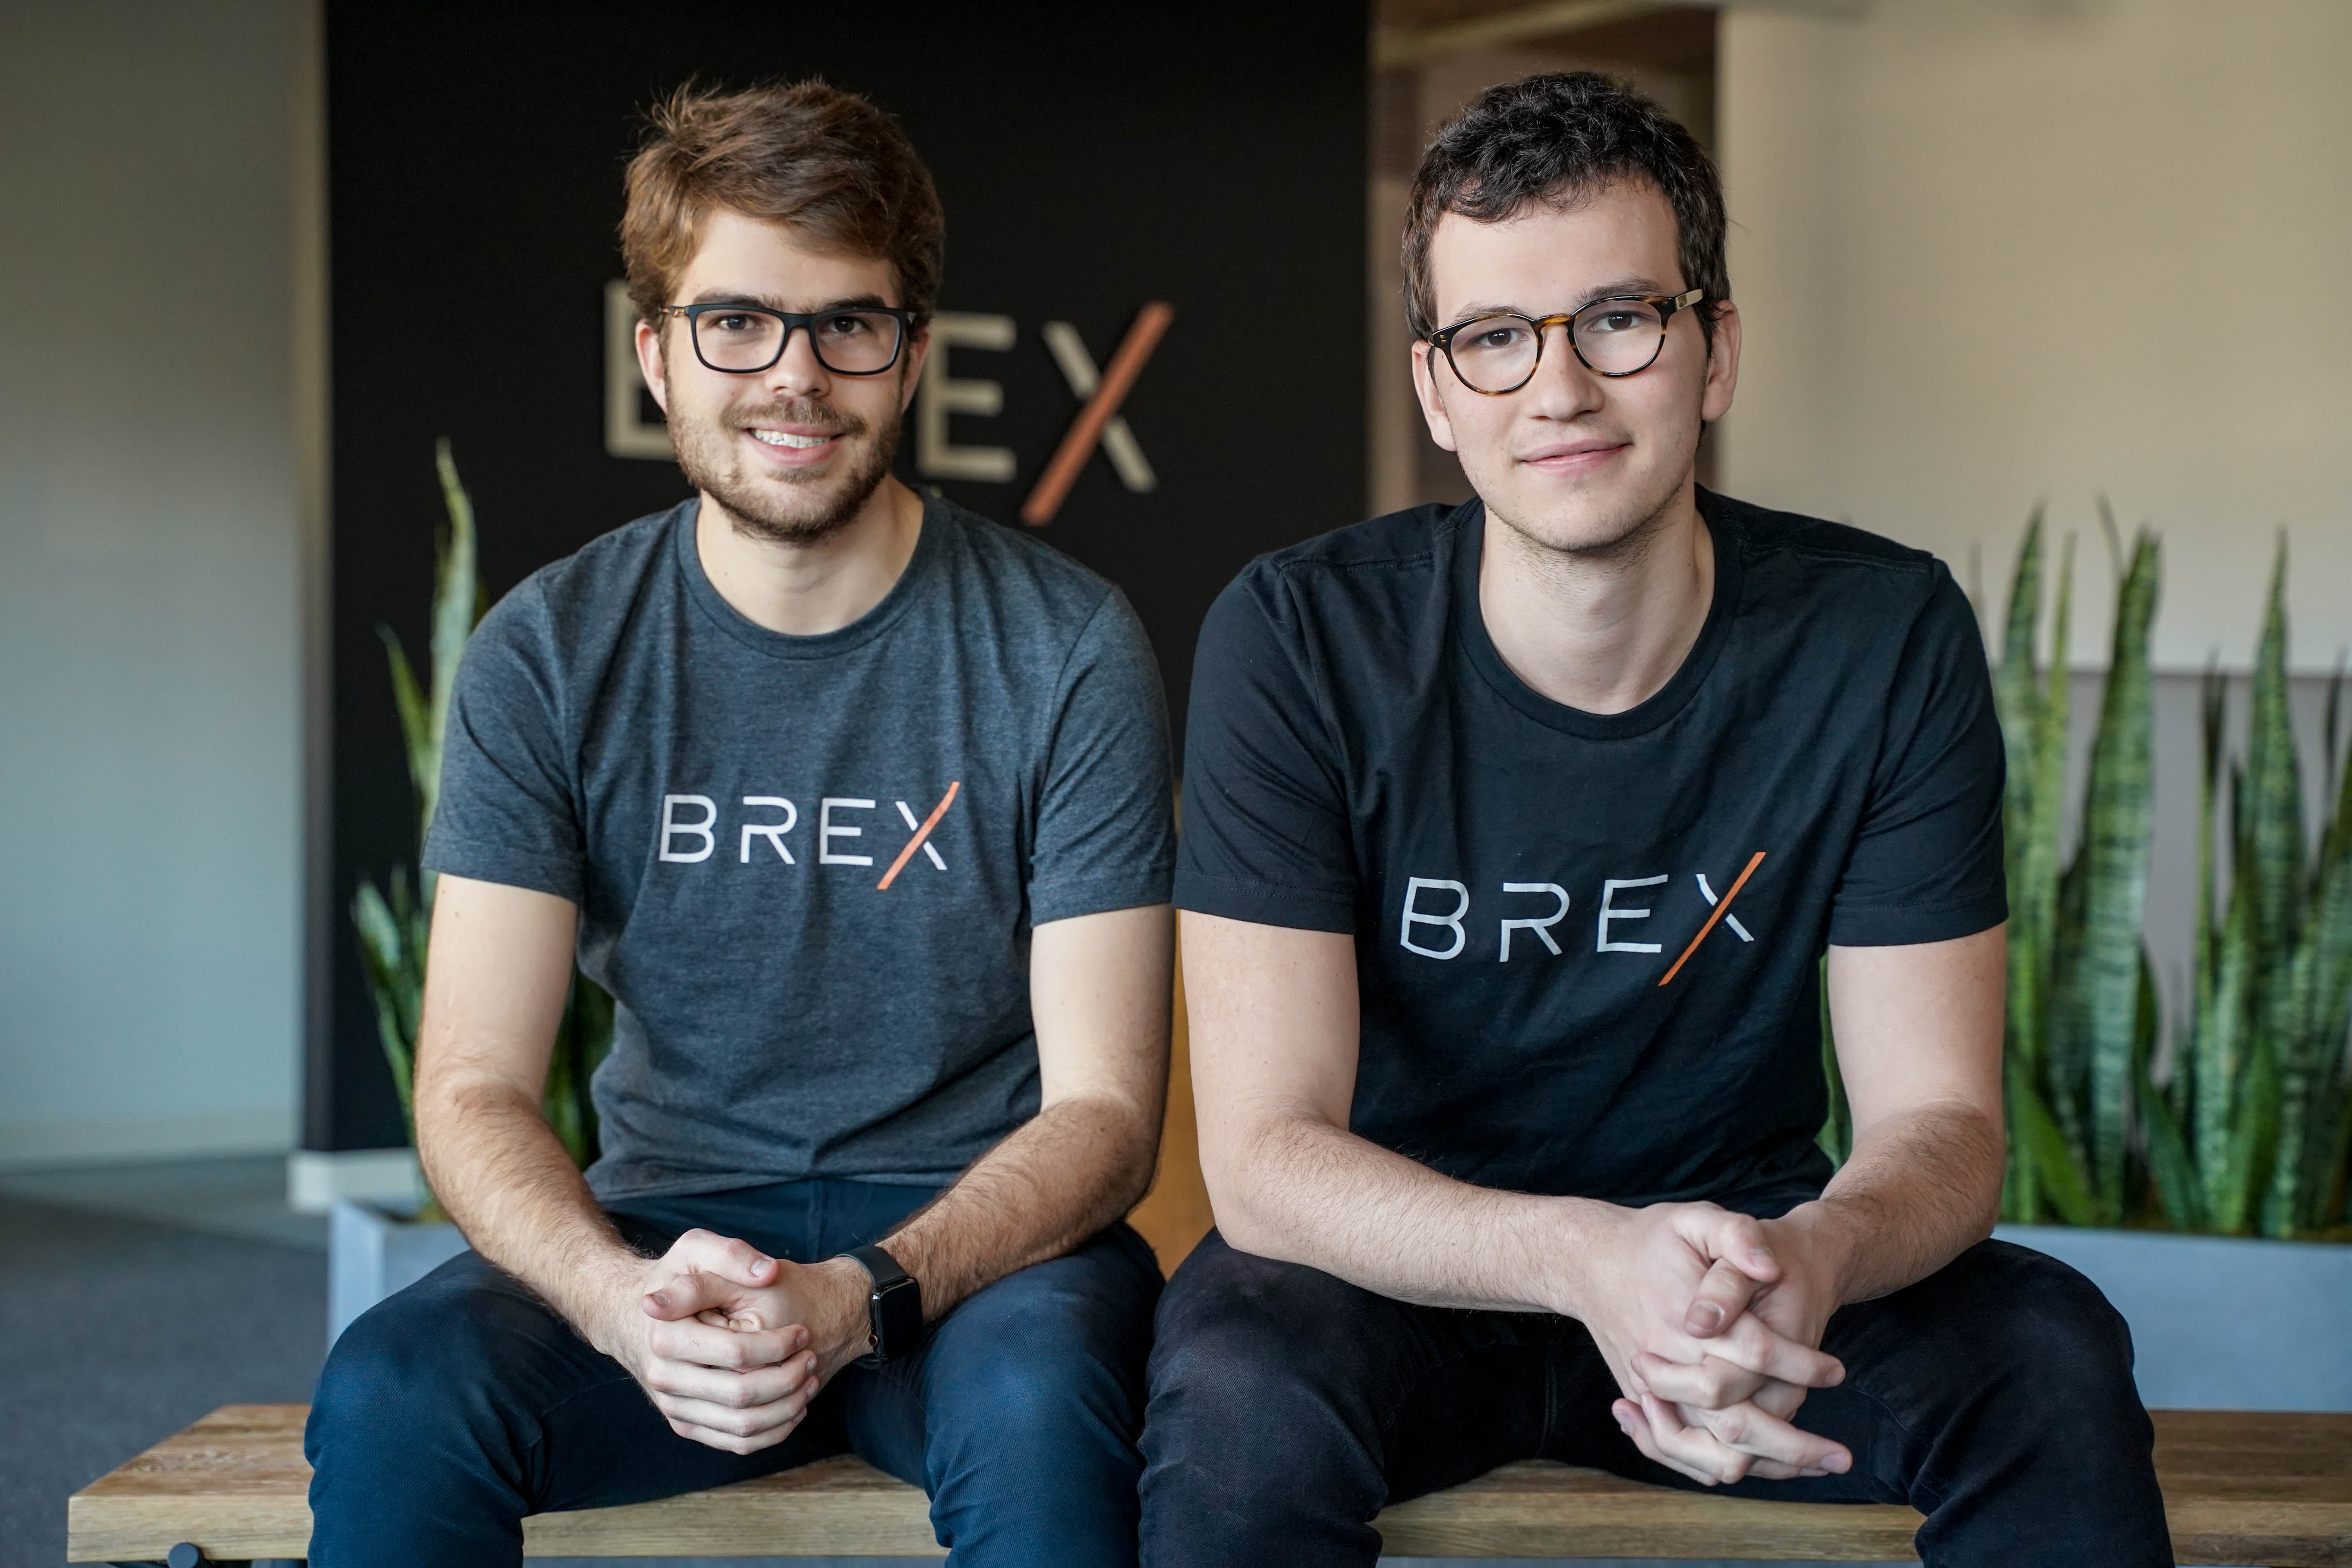 Brex, the start-up that lends to other start-ups, taps $200 million line from Credit Suisse